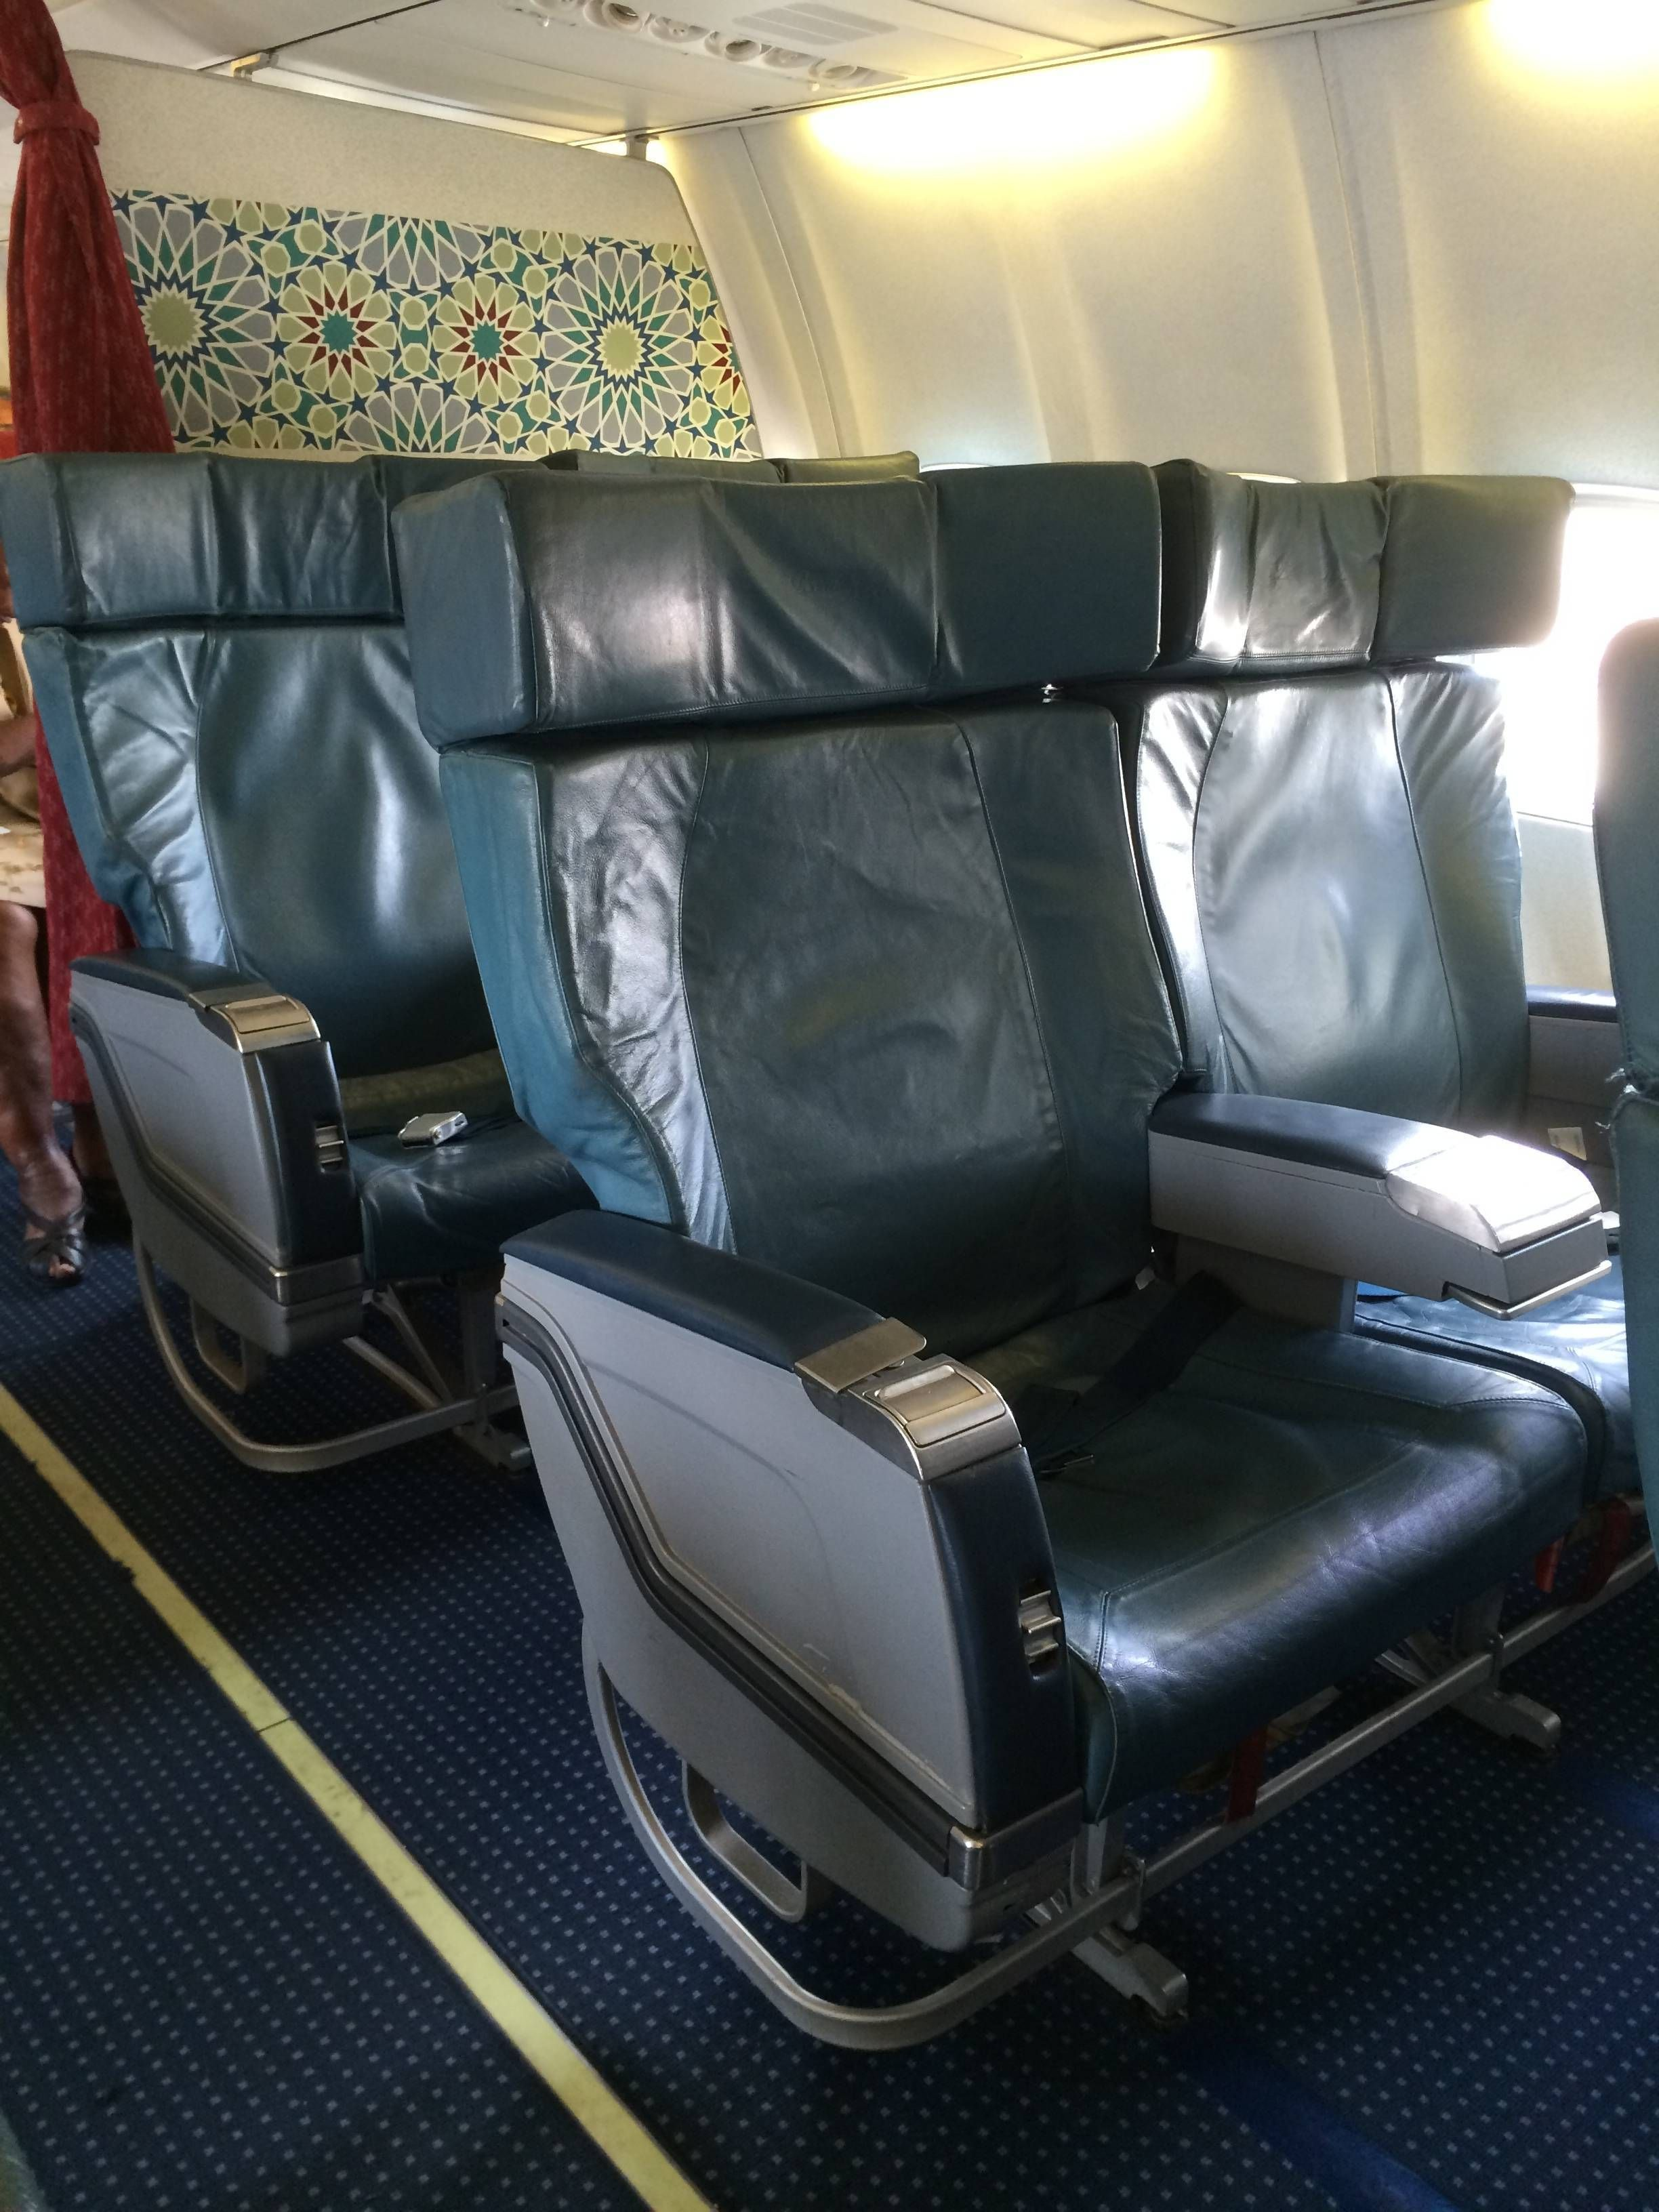 royal air maroc classe executiva b737 business class  passageirodeprimeira